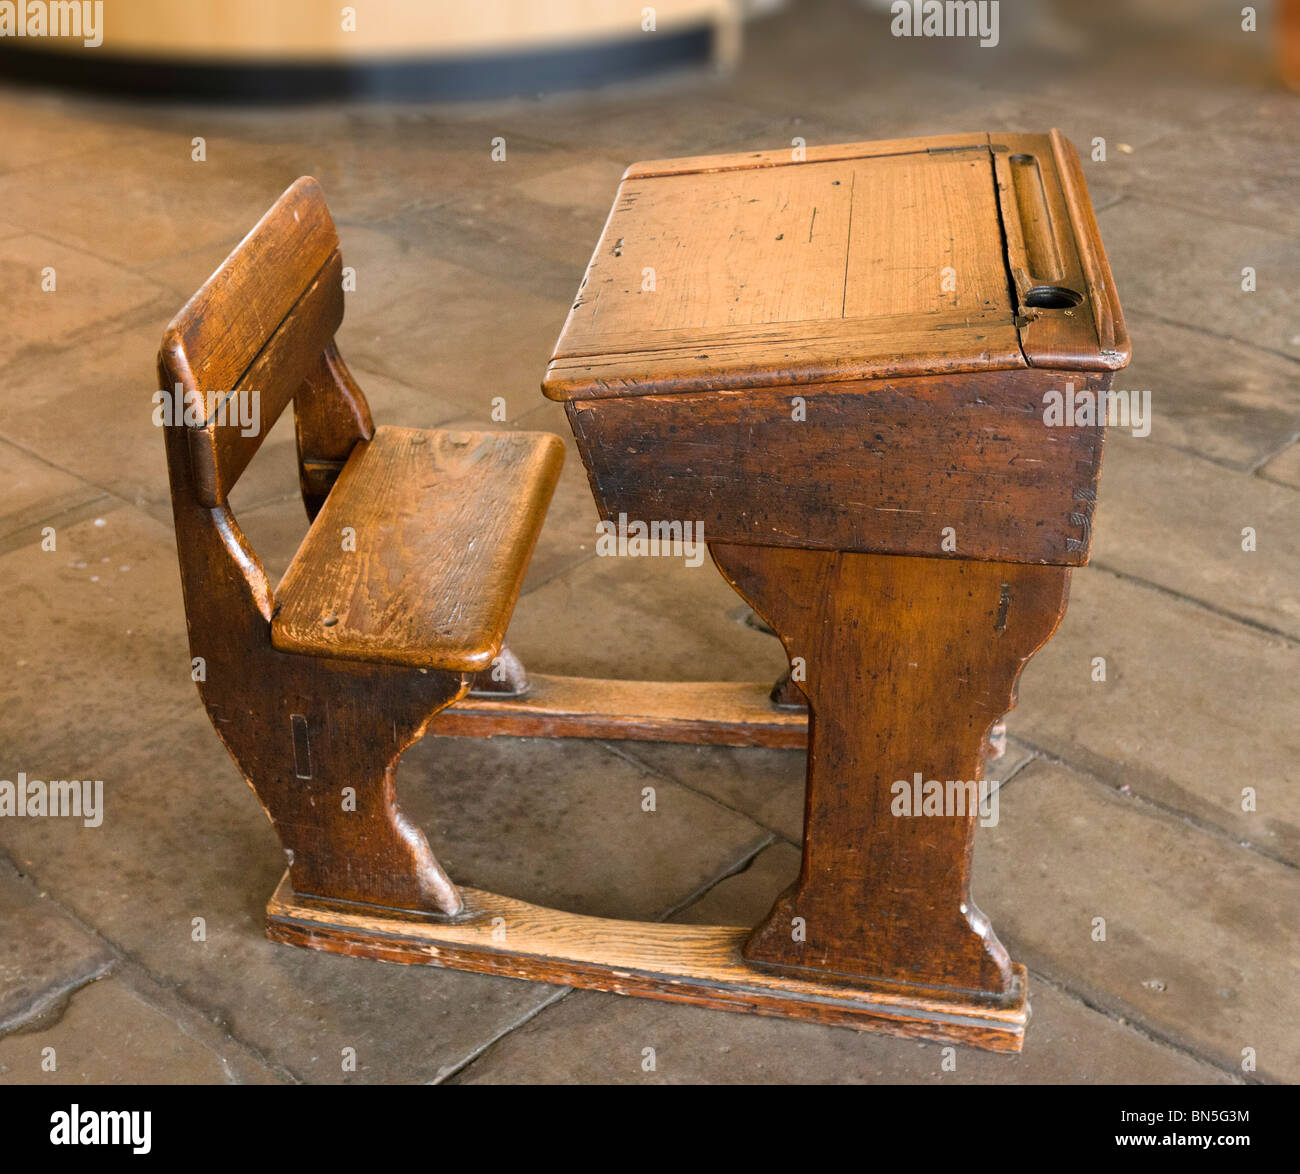 Traditional wooden school desk, Salts Mill, Saltaire, Bradford, England - Stock Image